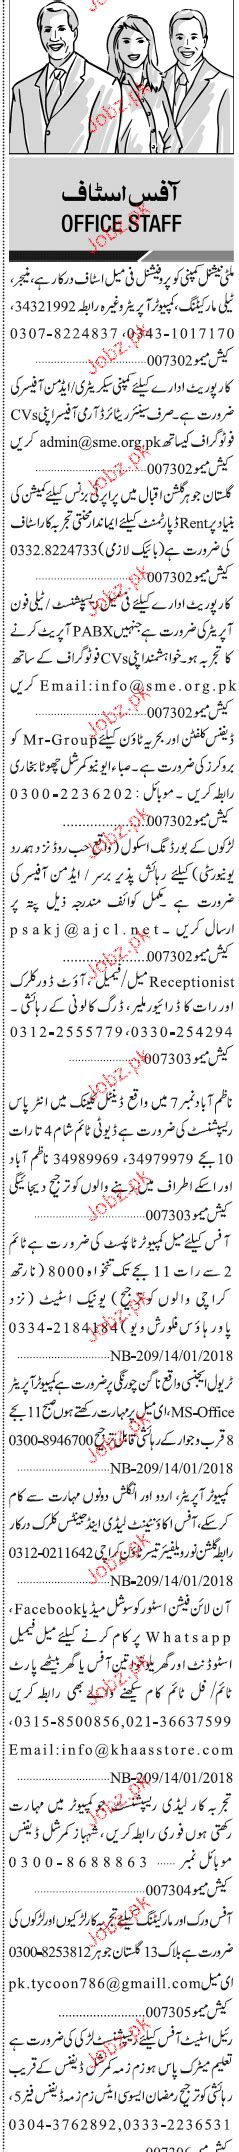 door to door marketing companies in karachi marketing staff computer operators opportunity 2019